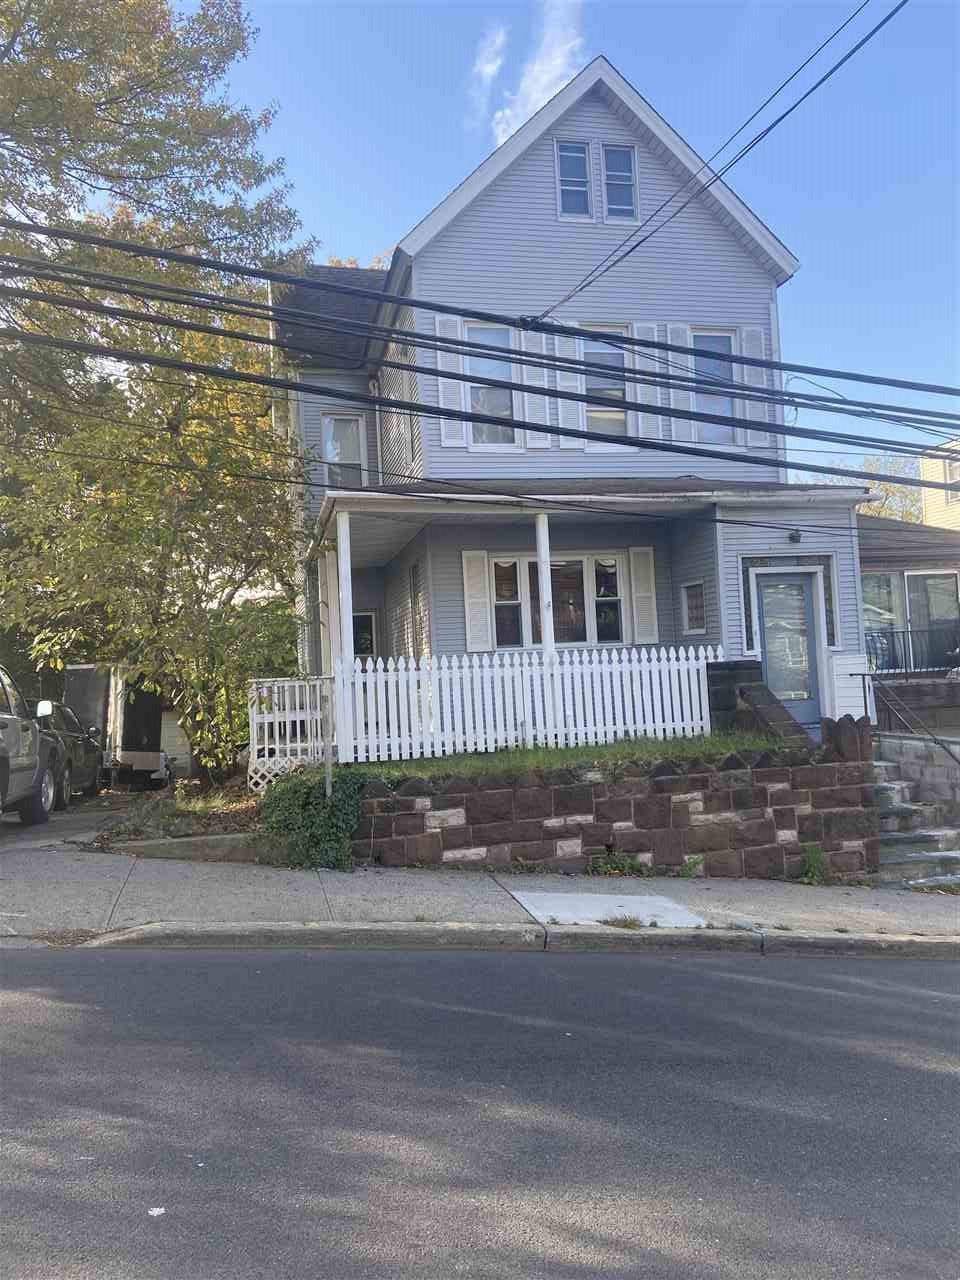 1203 51ST ST, North Bergen, New Jersey 07047, 3 Bedrooms Bedrooms, ,2 BathroomsBathrooms,Residential,For Sale,1203 51ST ST,202025933